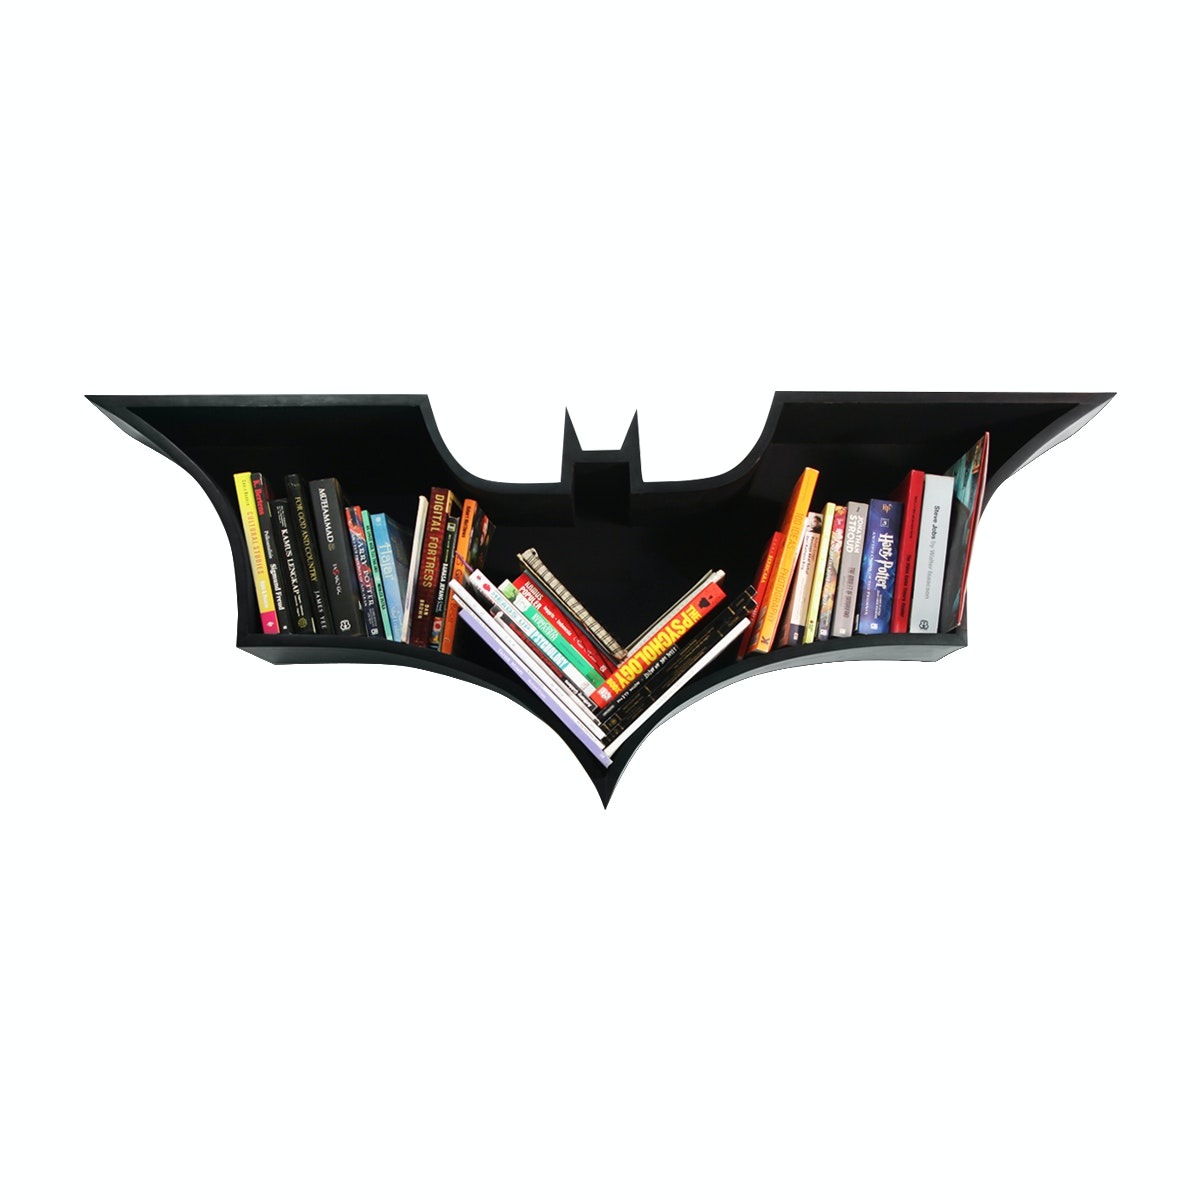 Fangorn Batman Bookshelf